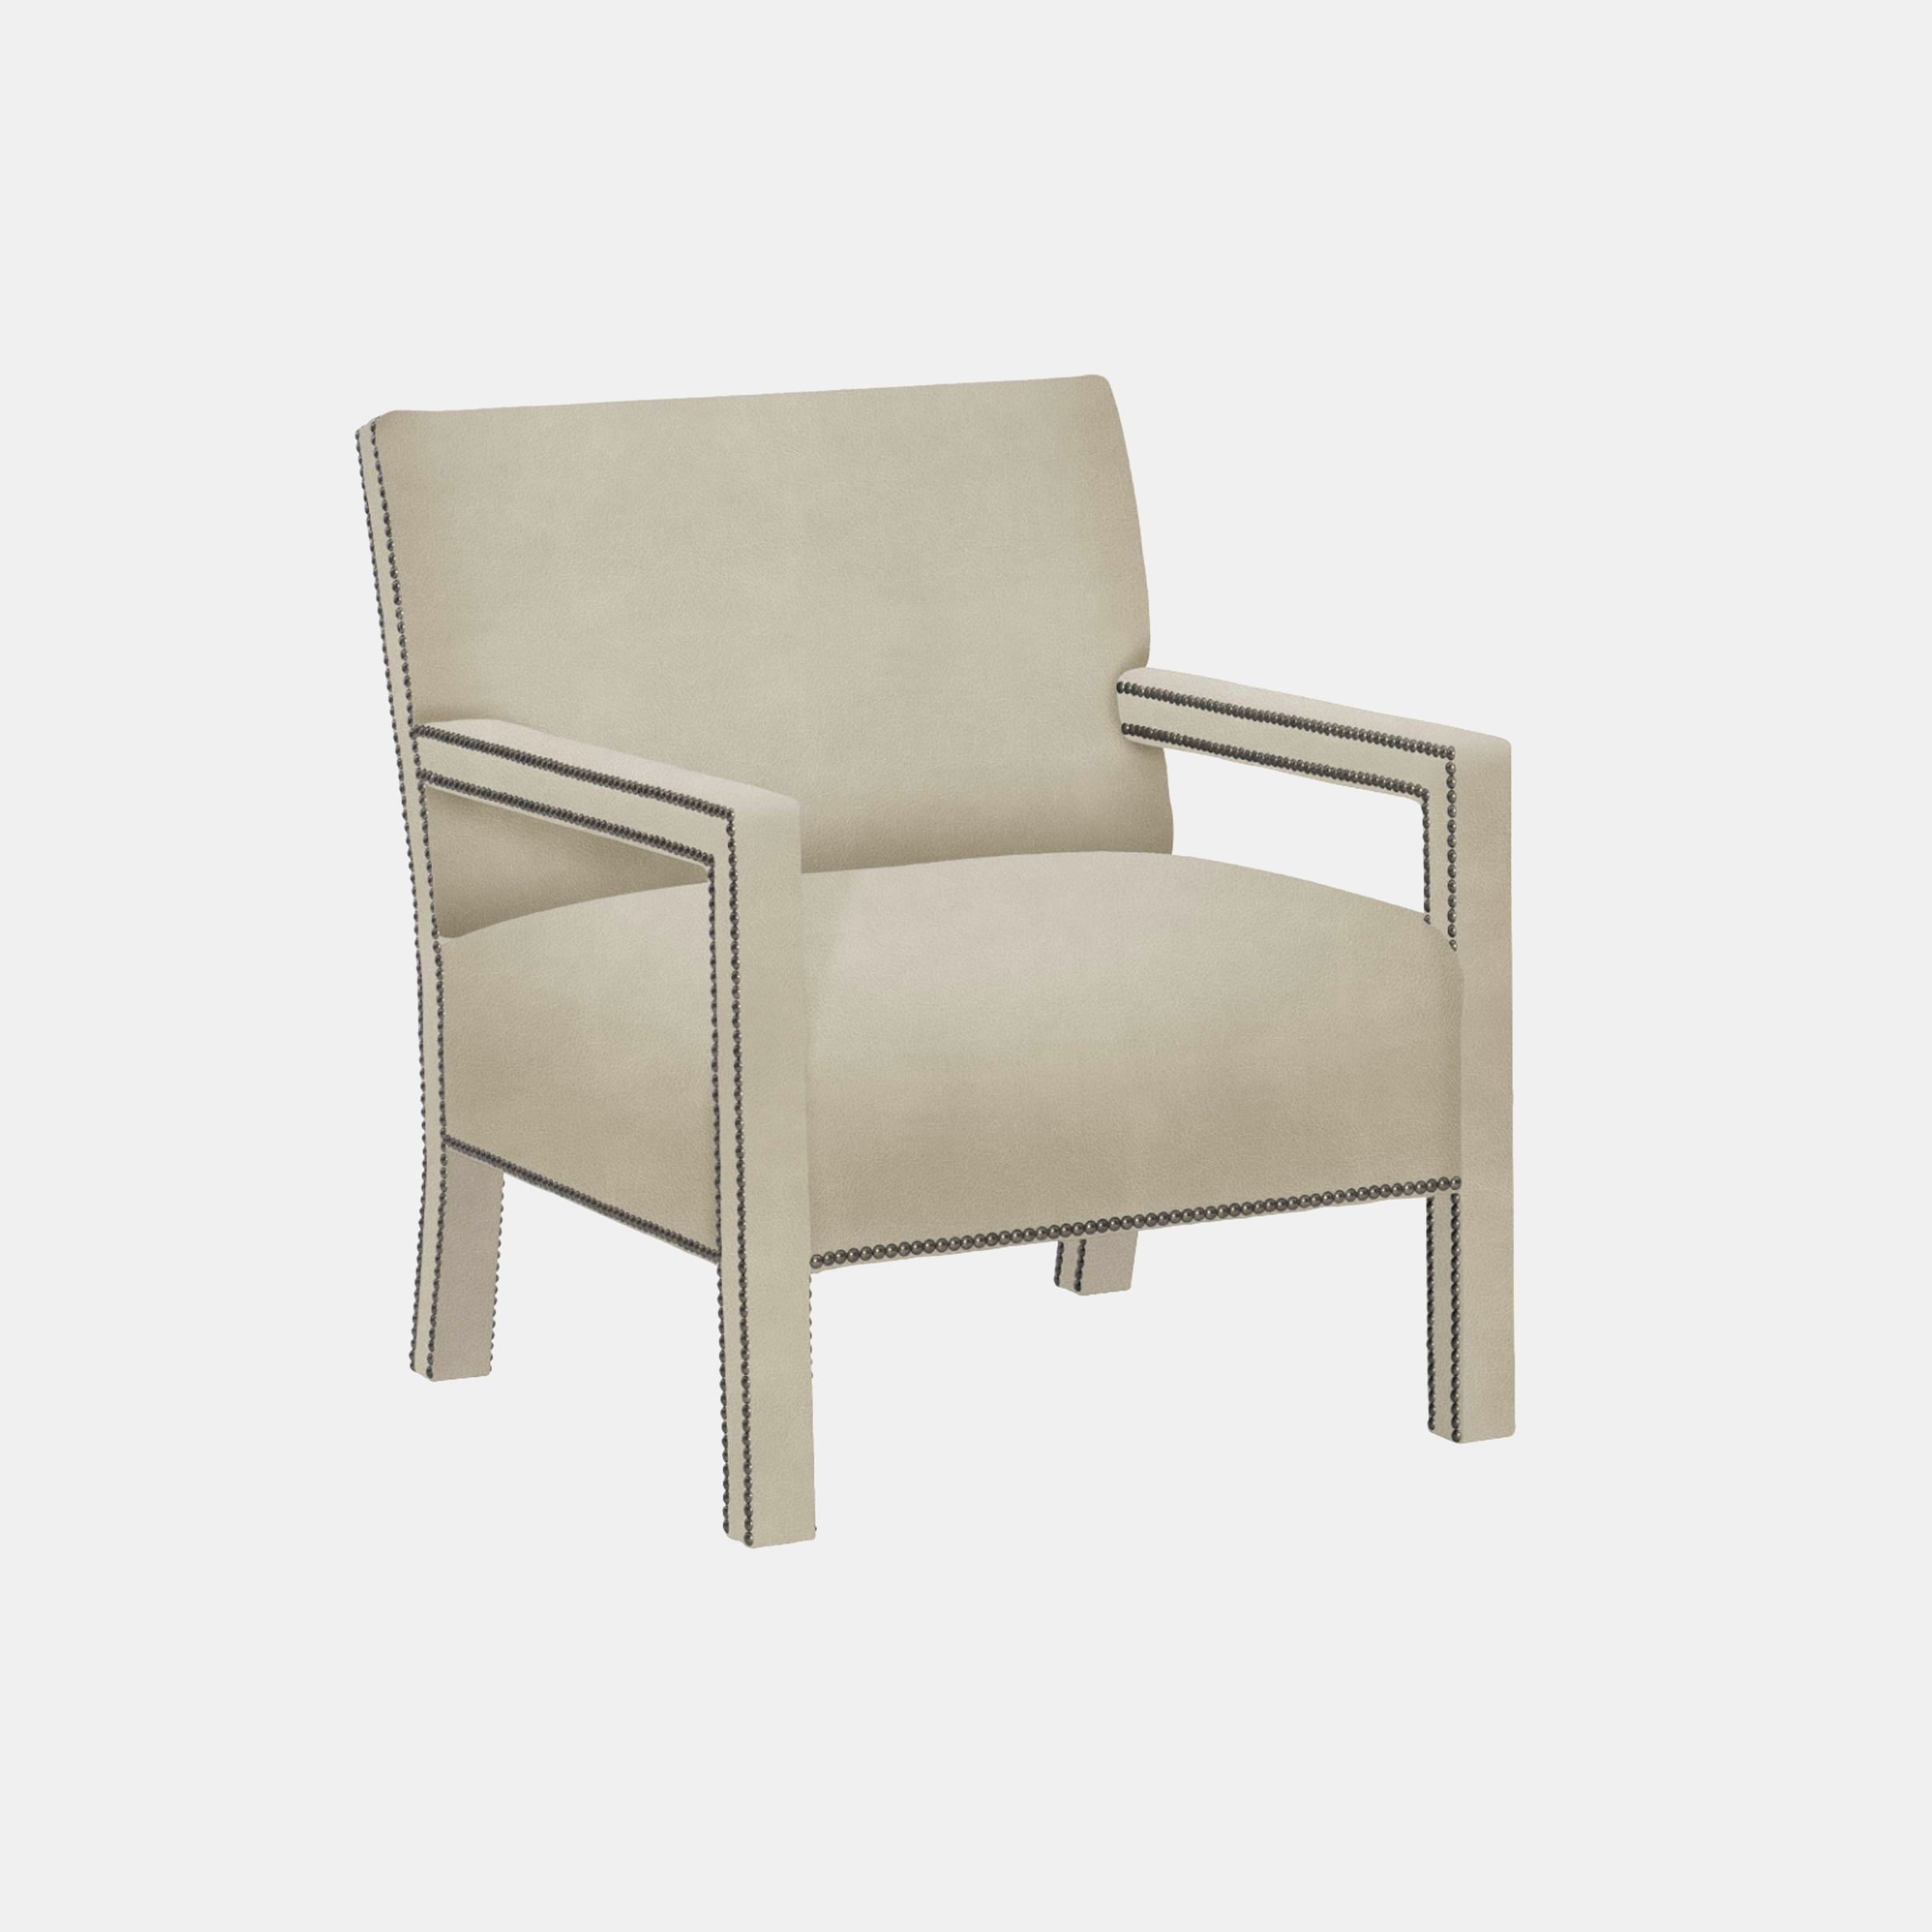 "Shelby Chair  29""w x 32""d x 34""h Available in leathers, fabrics, or COM. SKU99211BHT"